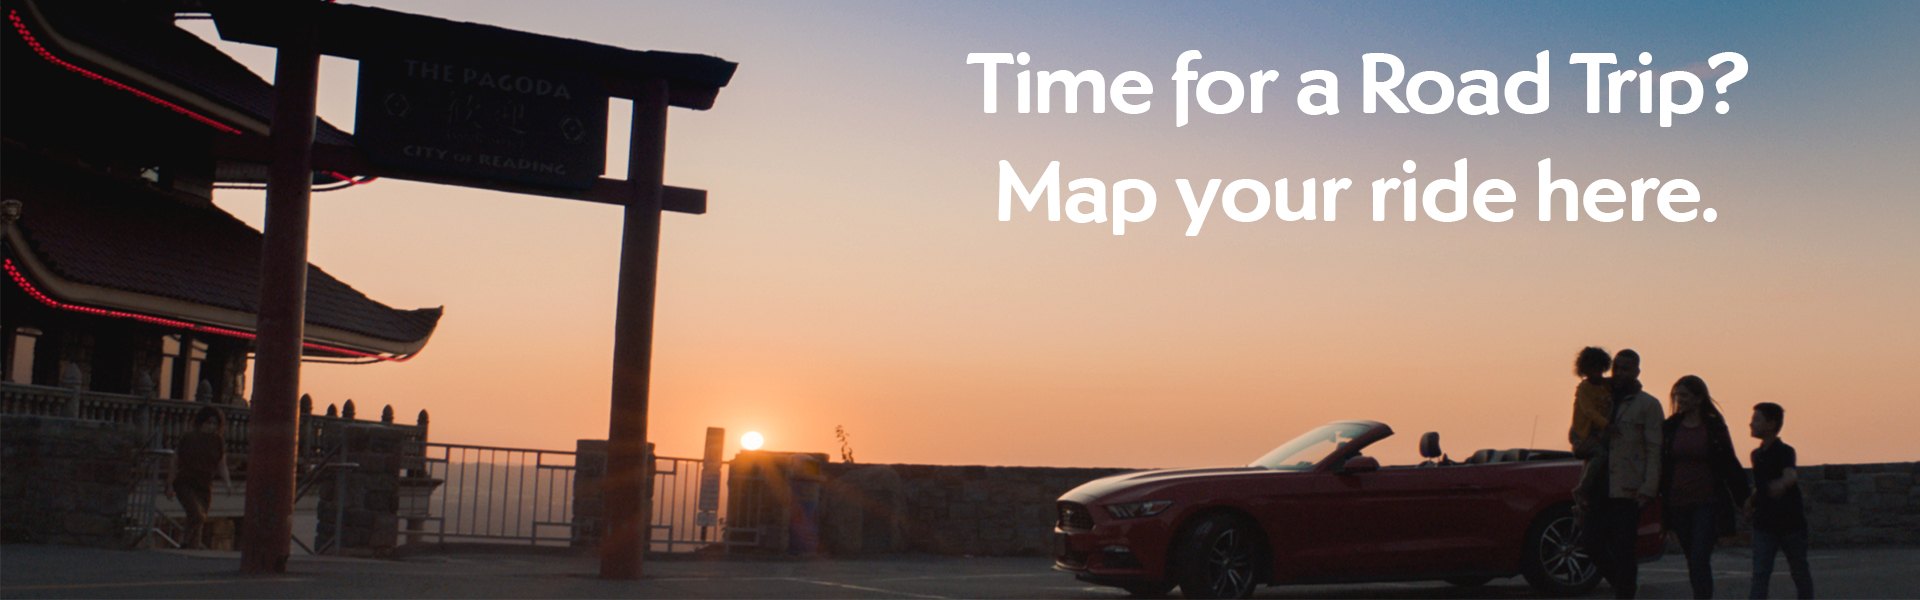 Time for a Road Trip? Map your ride here.